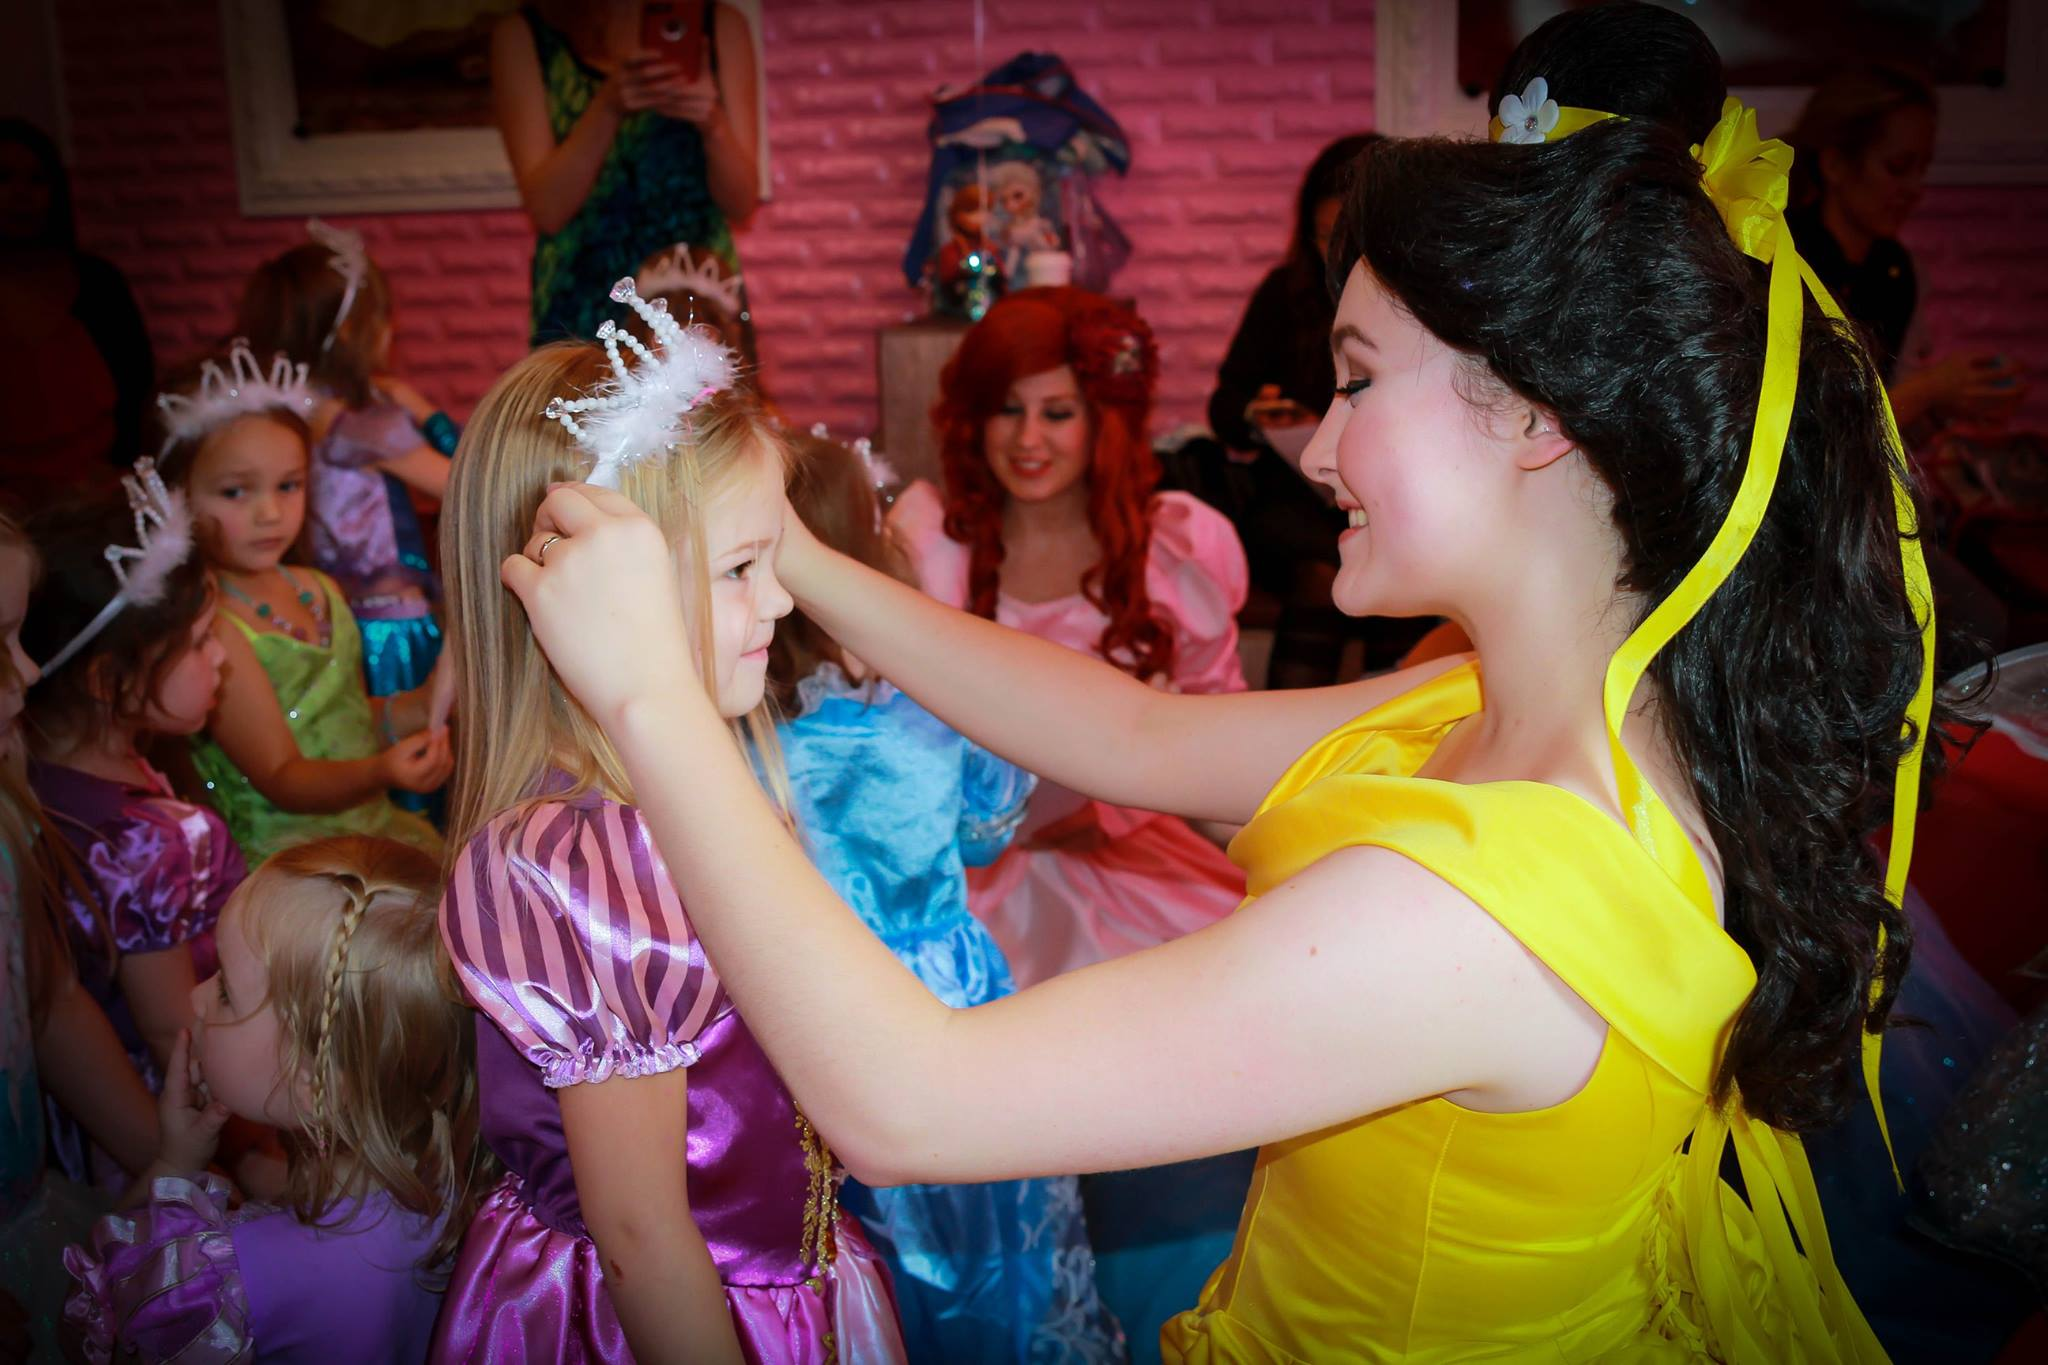 MIAMI PRINCESS PARTY COMPANY OFFERING CHARACTER VISITS FOR BIRTHDAY PARTIES IN SOUTH FLORIDA